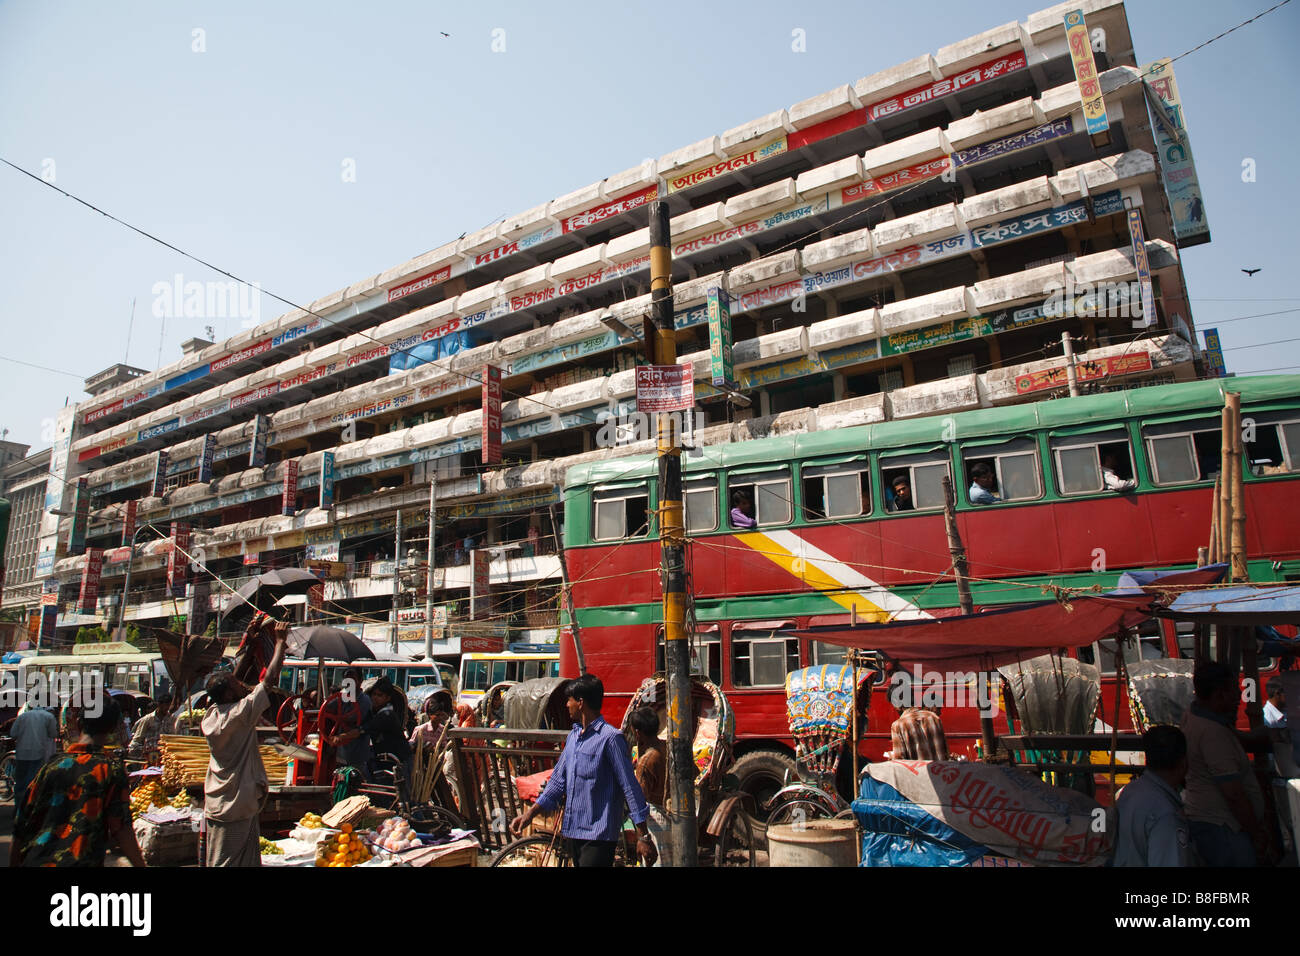 Shopping centre mall in Gulistan area of Dhaka, Bangladesh - Stock Image